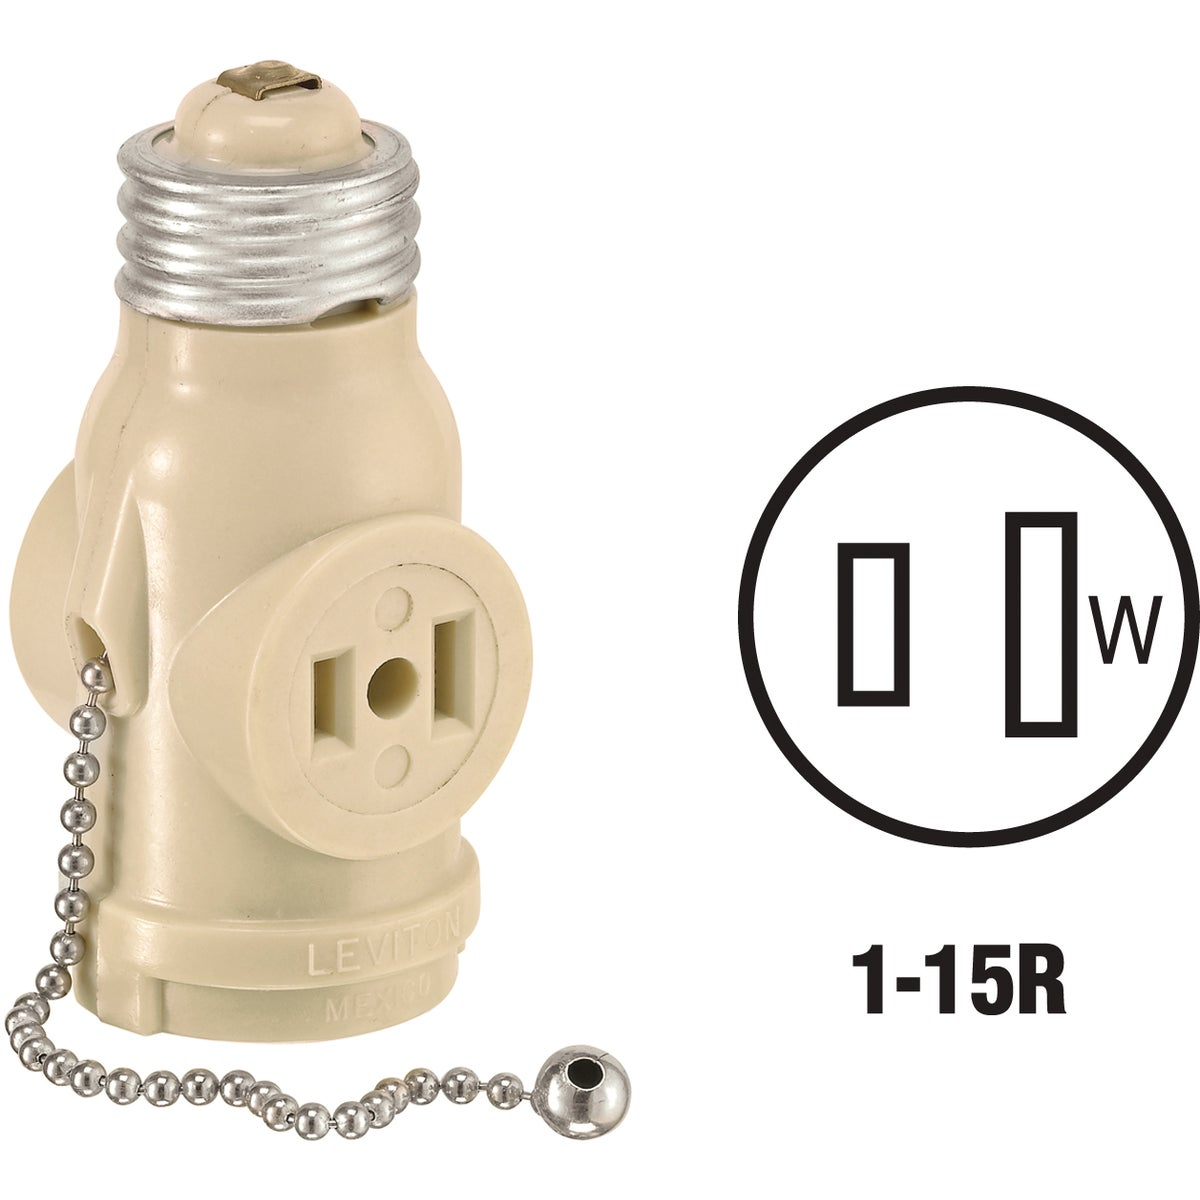 IV SOCKET ADAPTER - 8761406I by Leviton Mfg Co